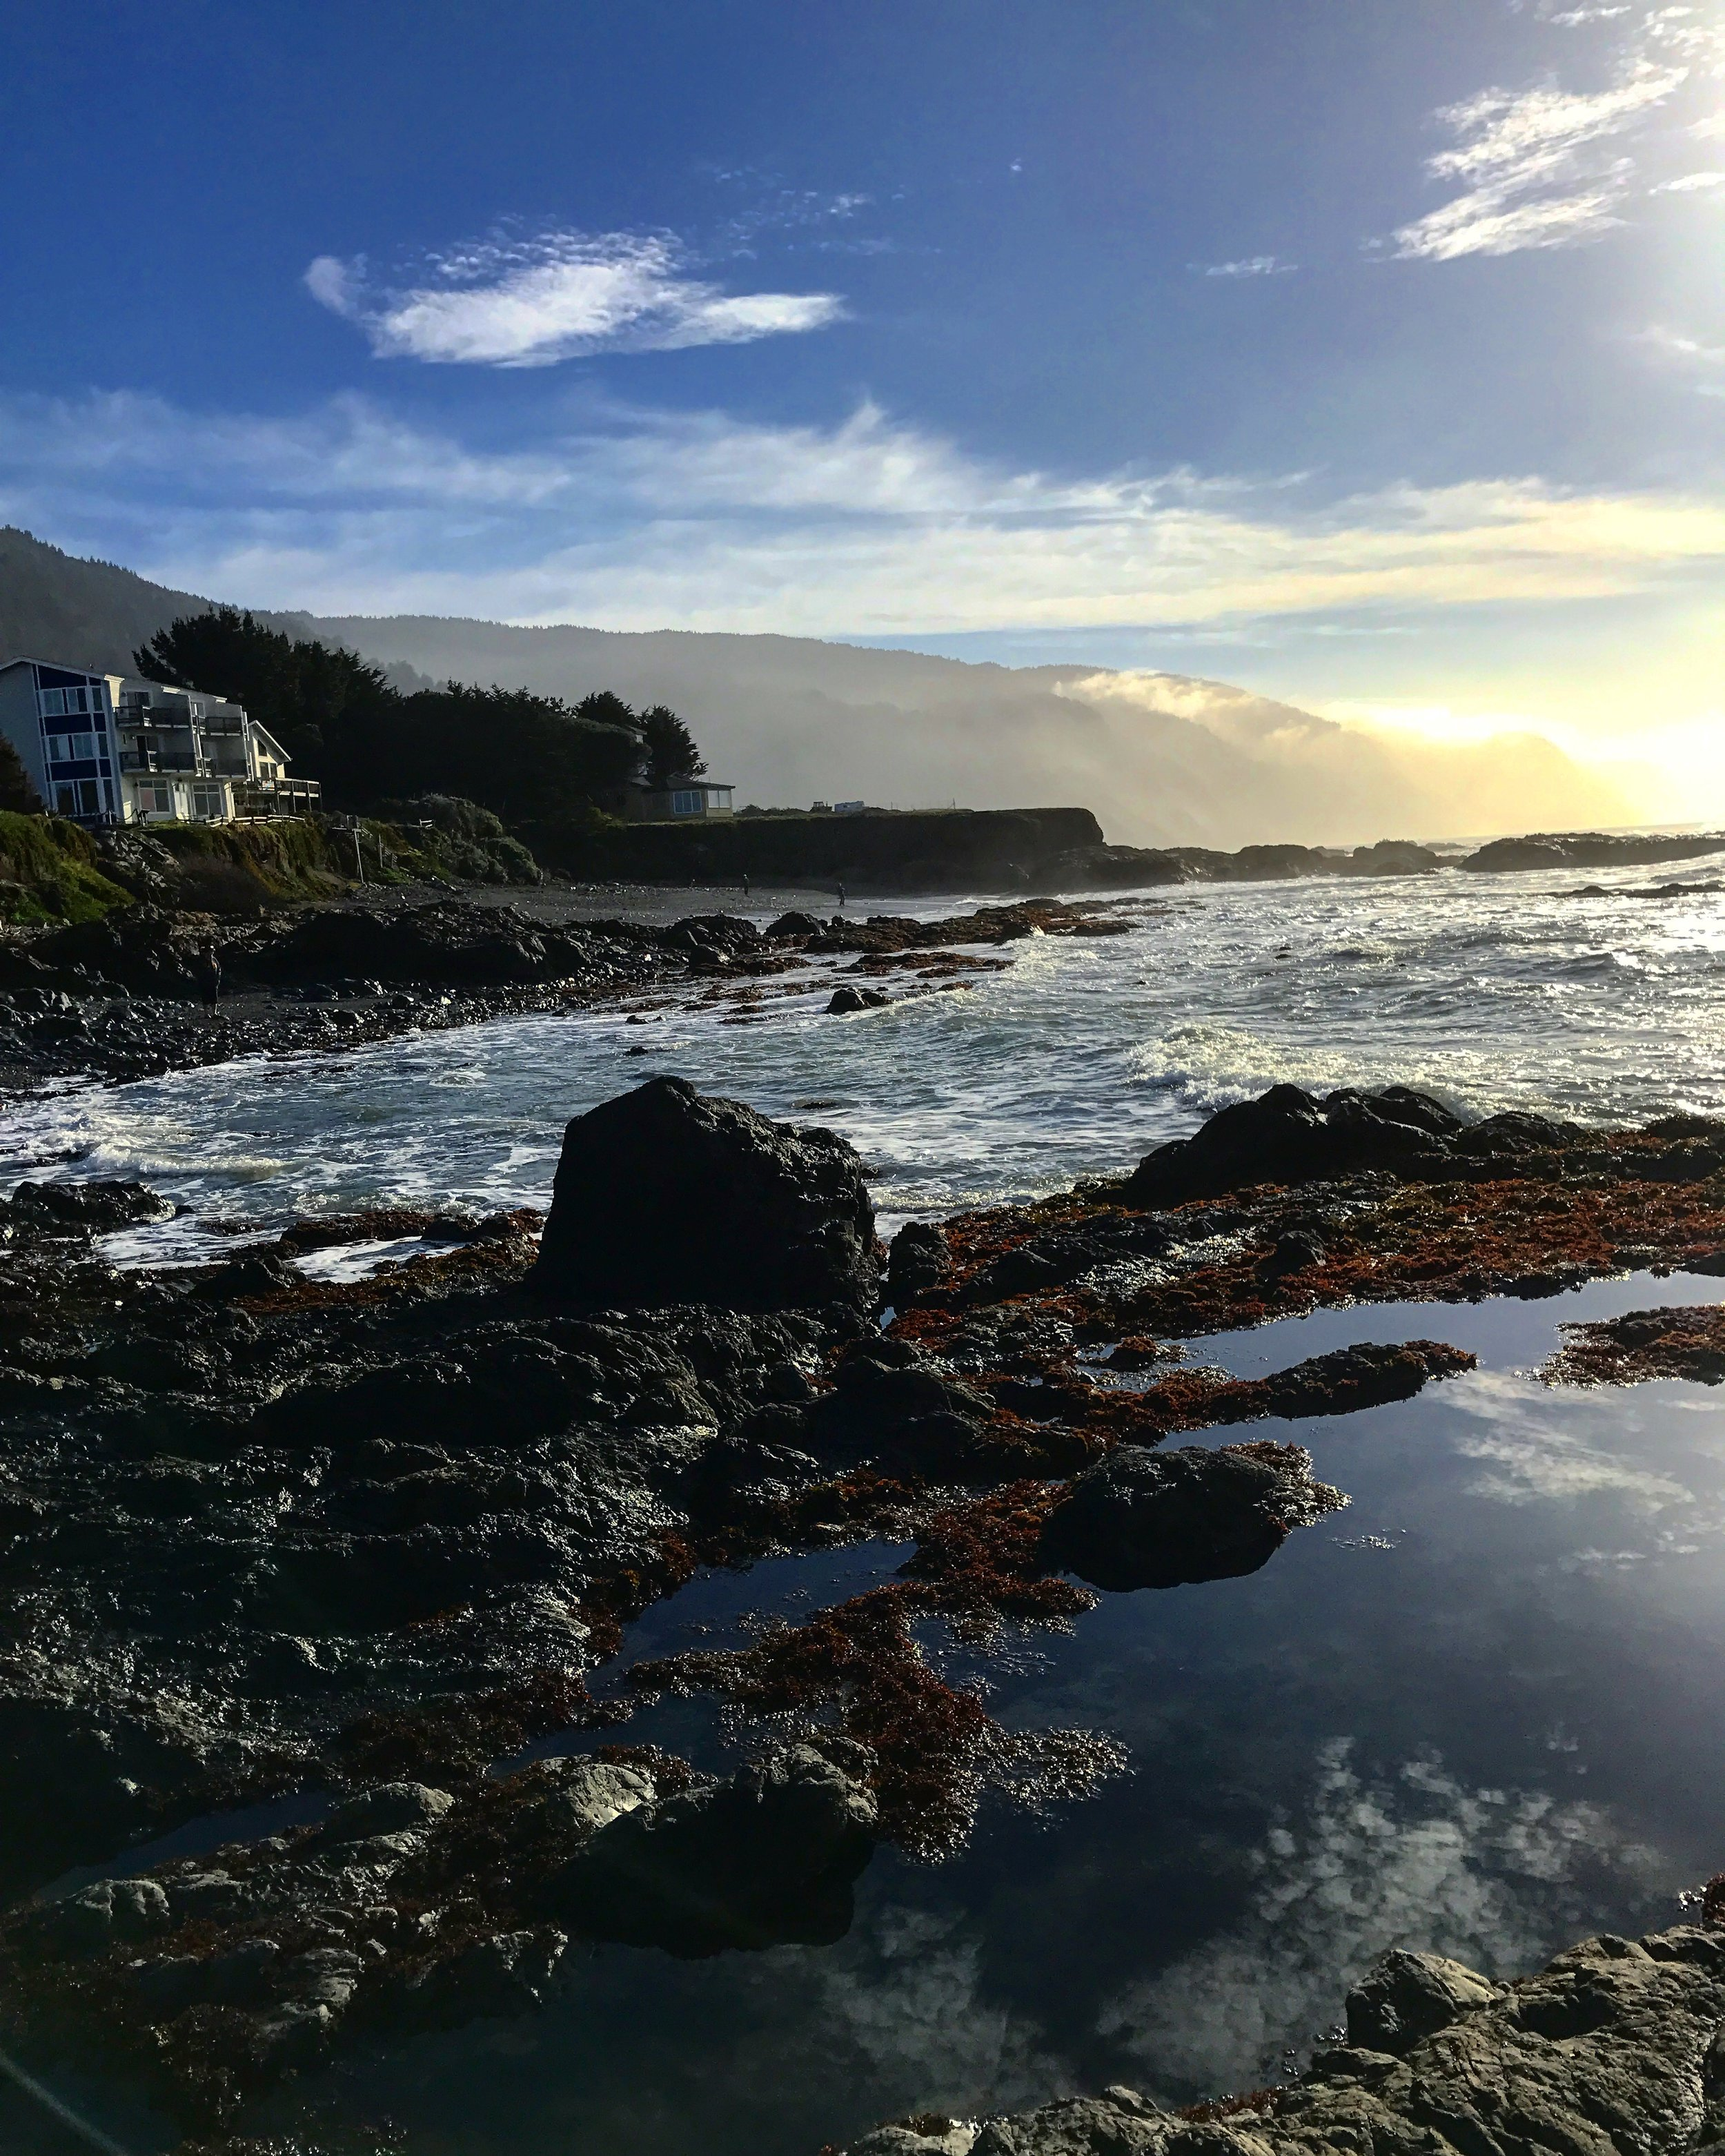 Tide pools at Shelter Cove in California.